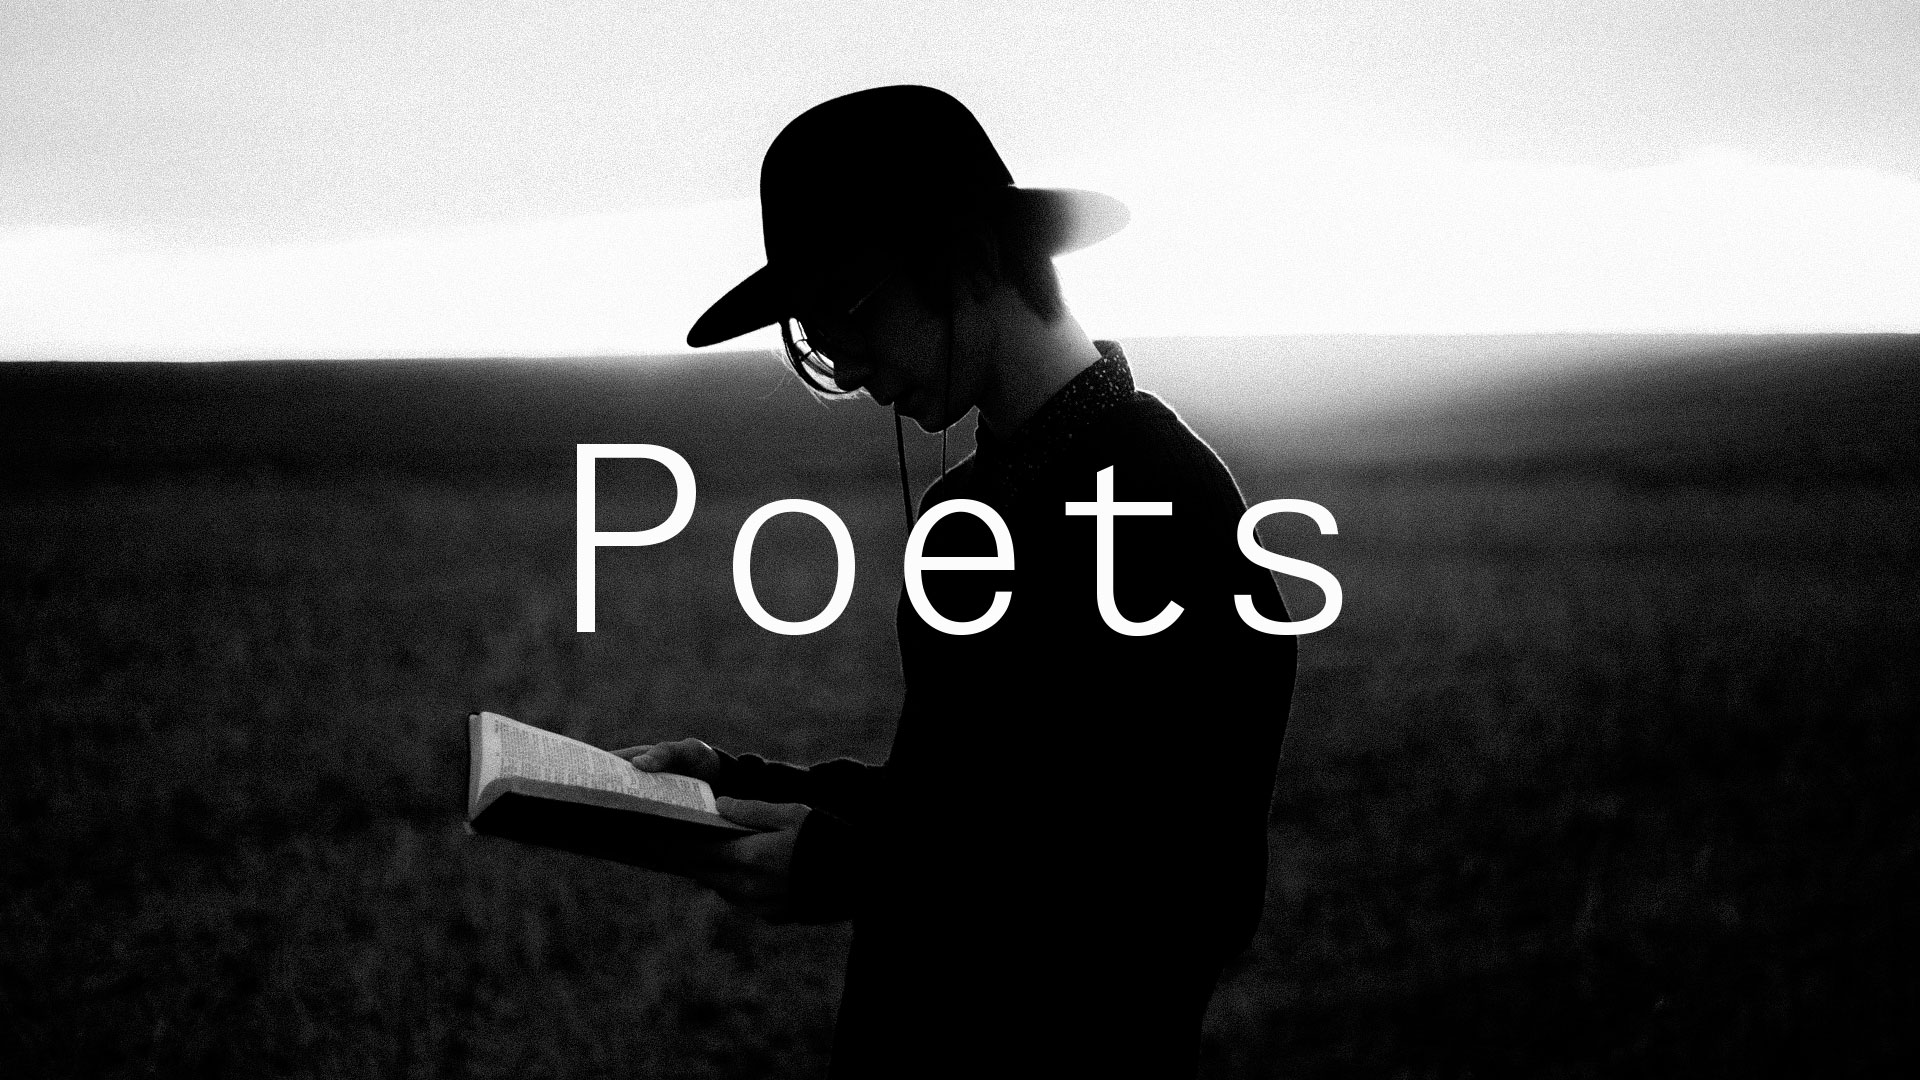 lack and white picture of a man with Poets written on top